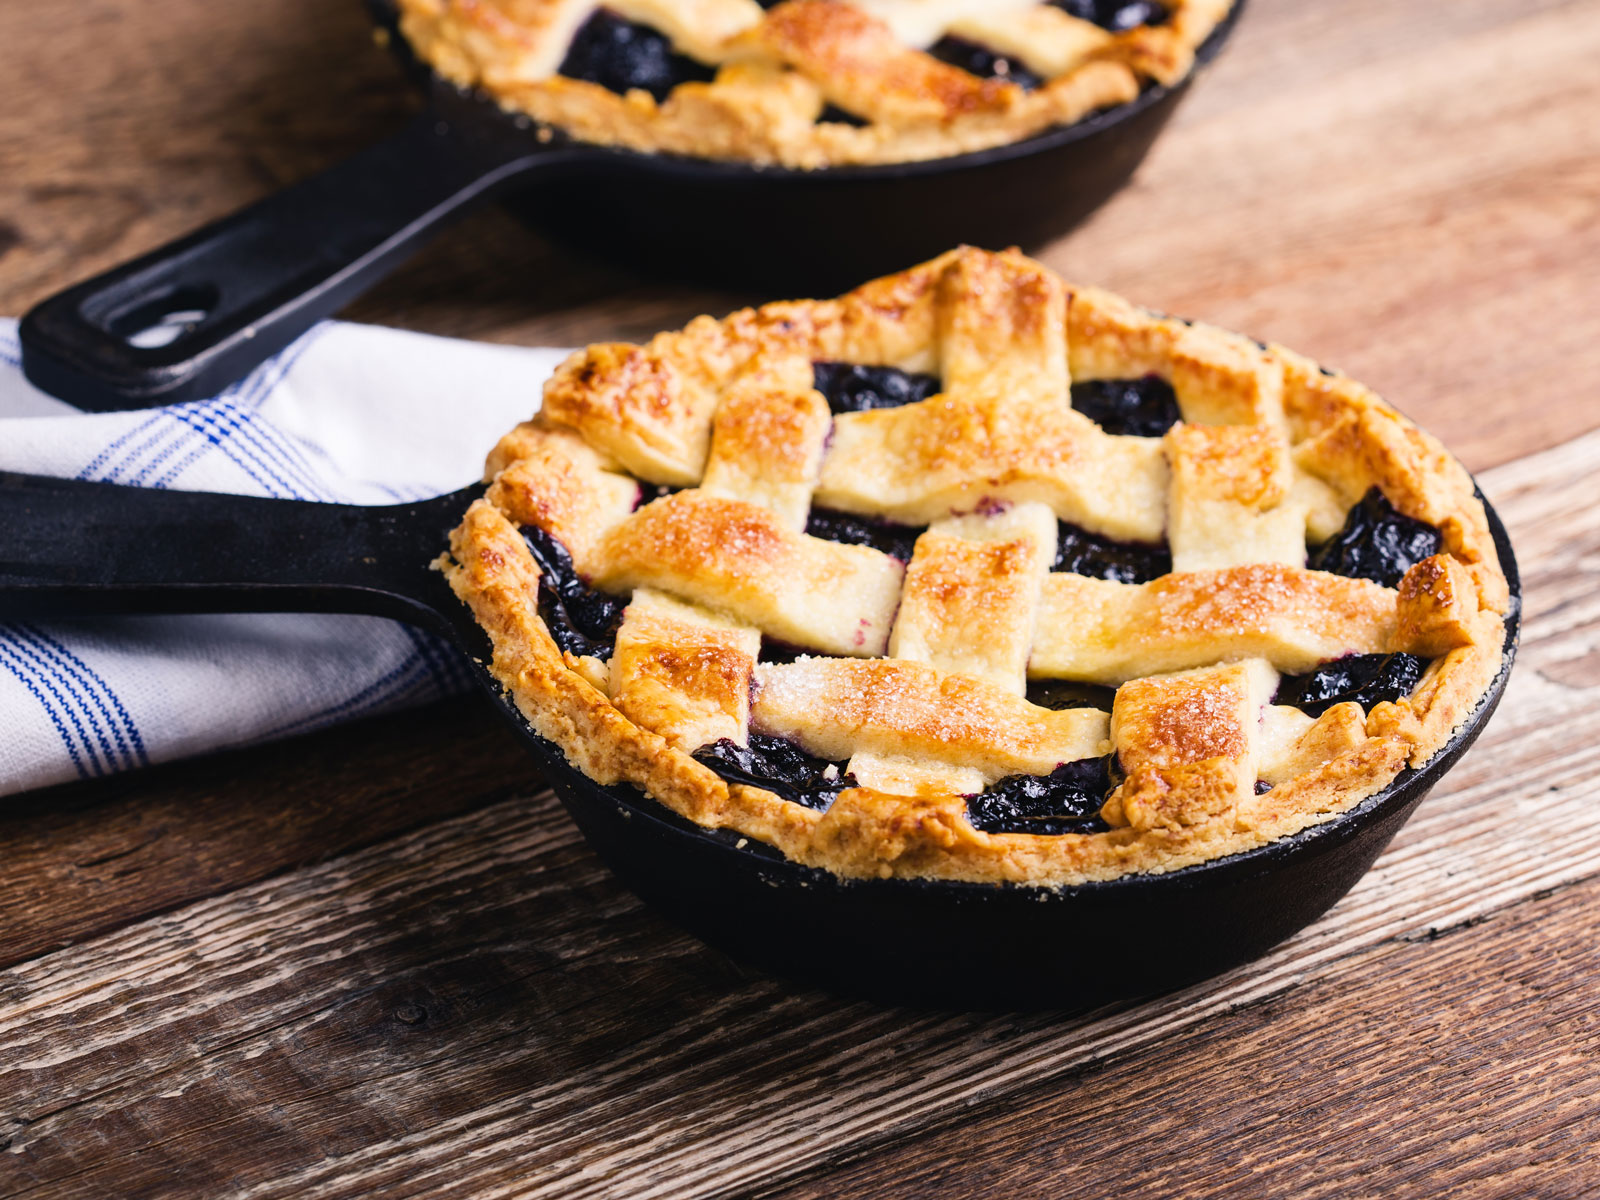 Score pie deals on National Pi Day